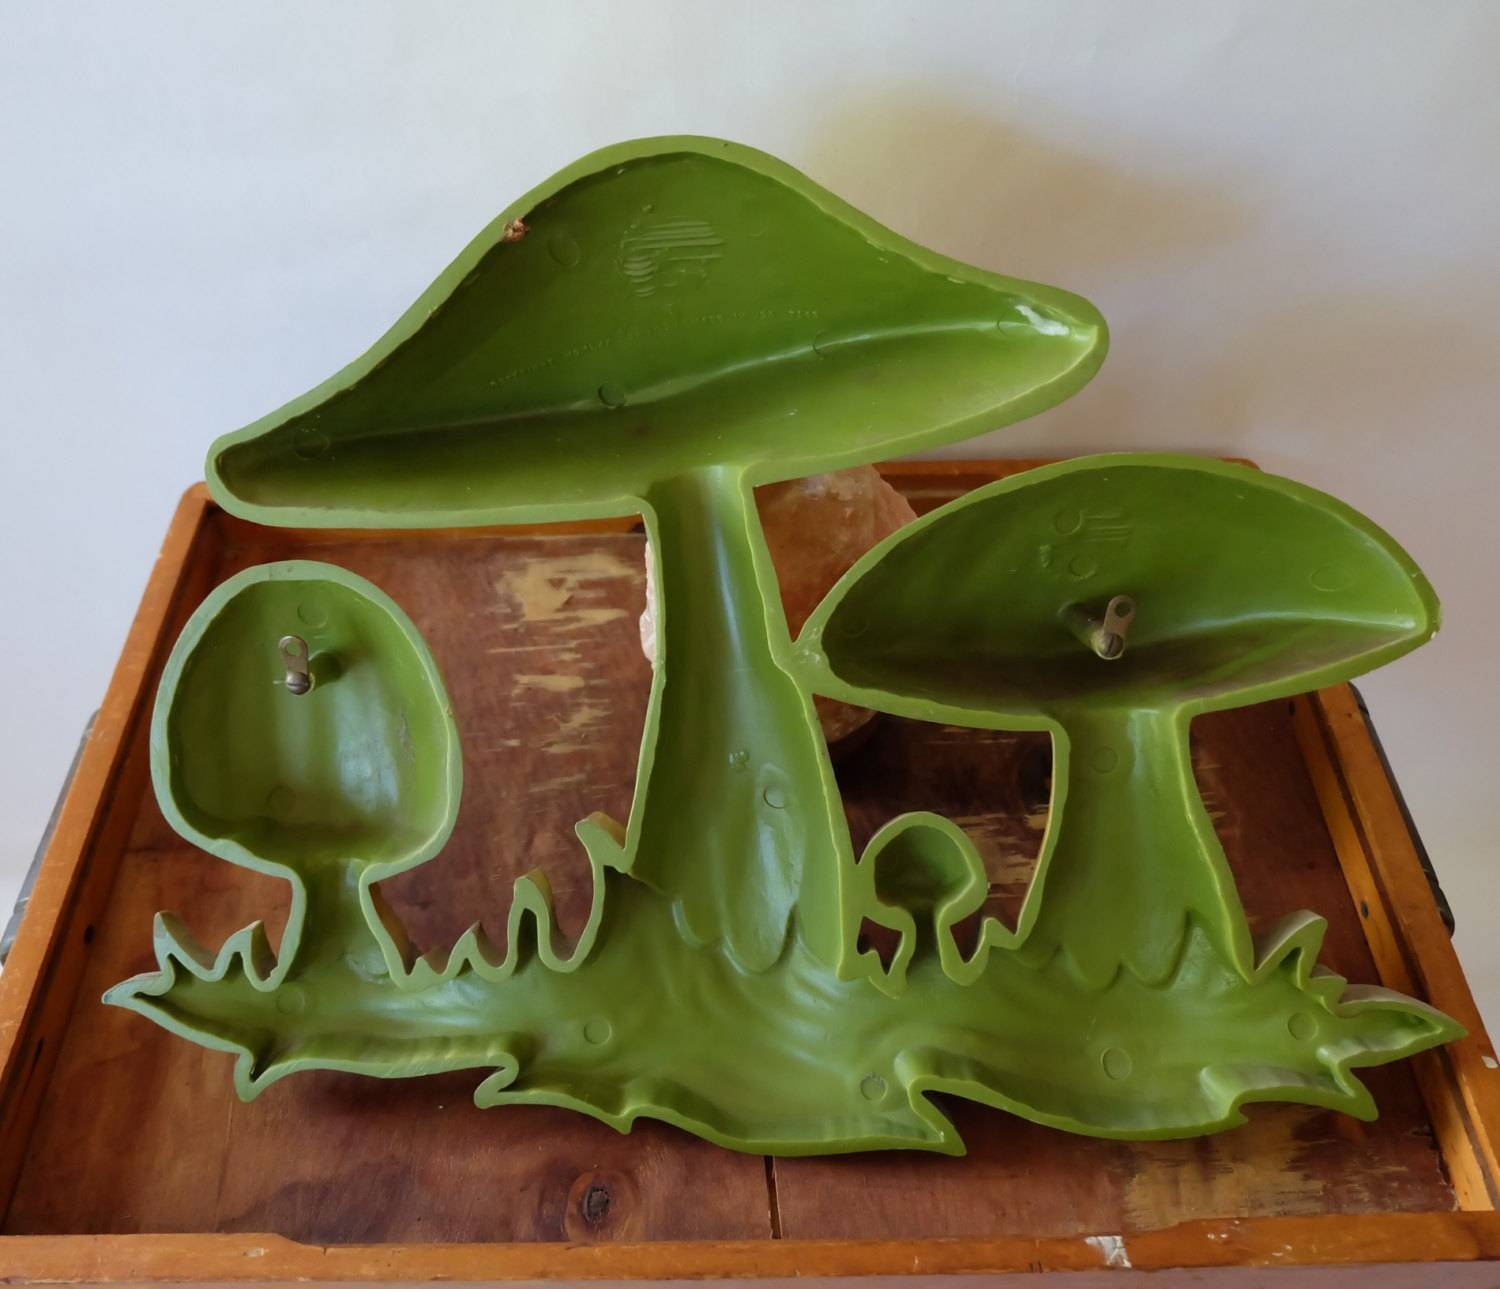 Retro 1960S 1970S Vintage Mushroom Wall Hanging, Retro Wall Art Within Best And Newest Mushroom Wall Art (View 10 of 20)